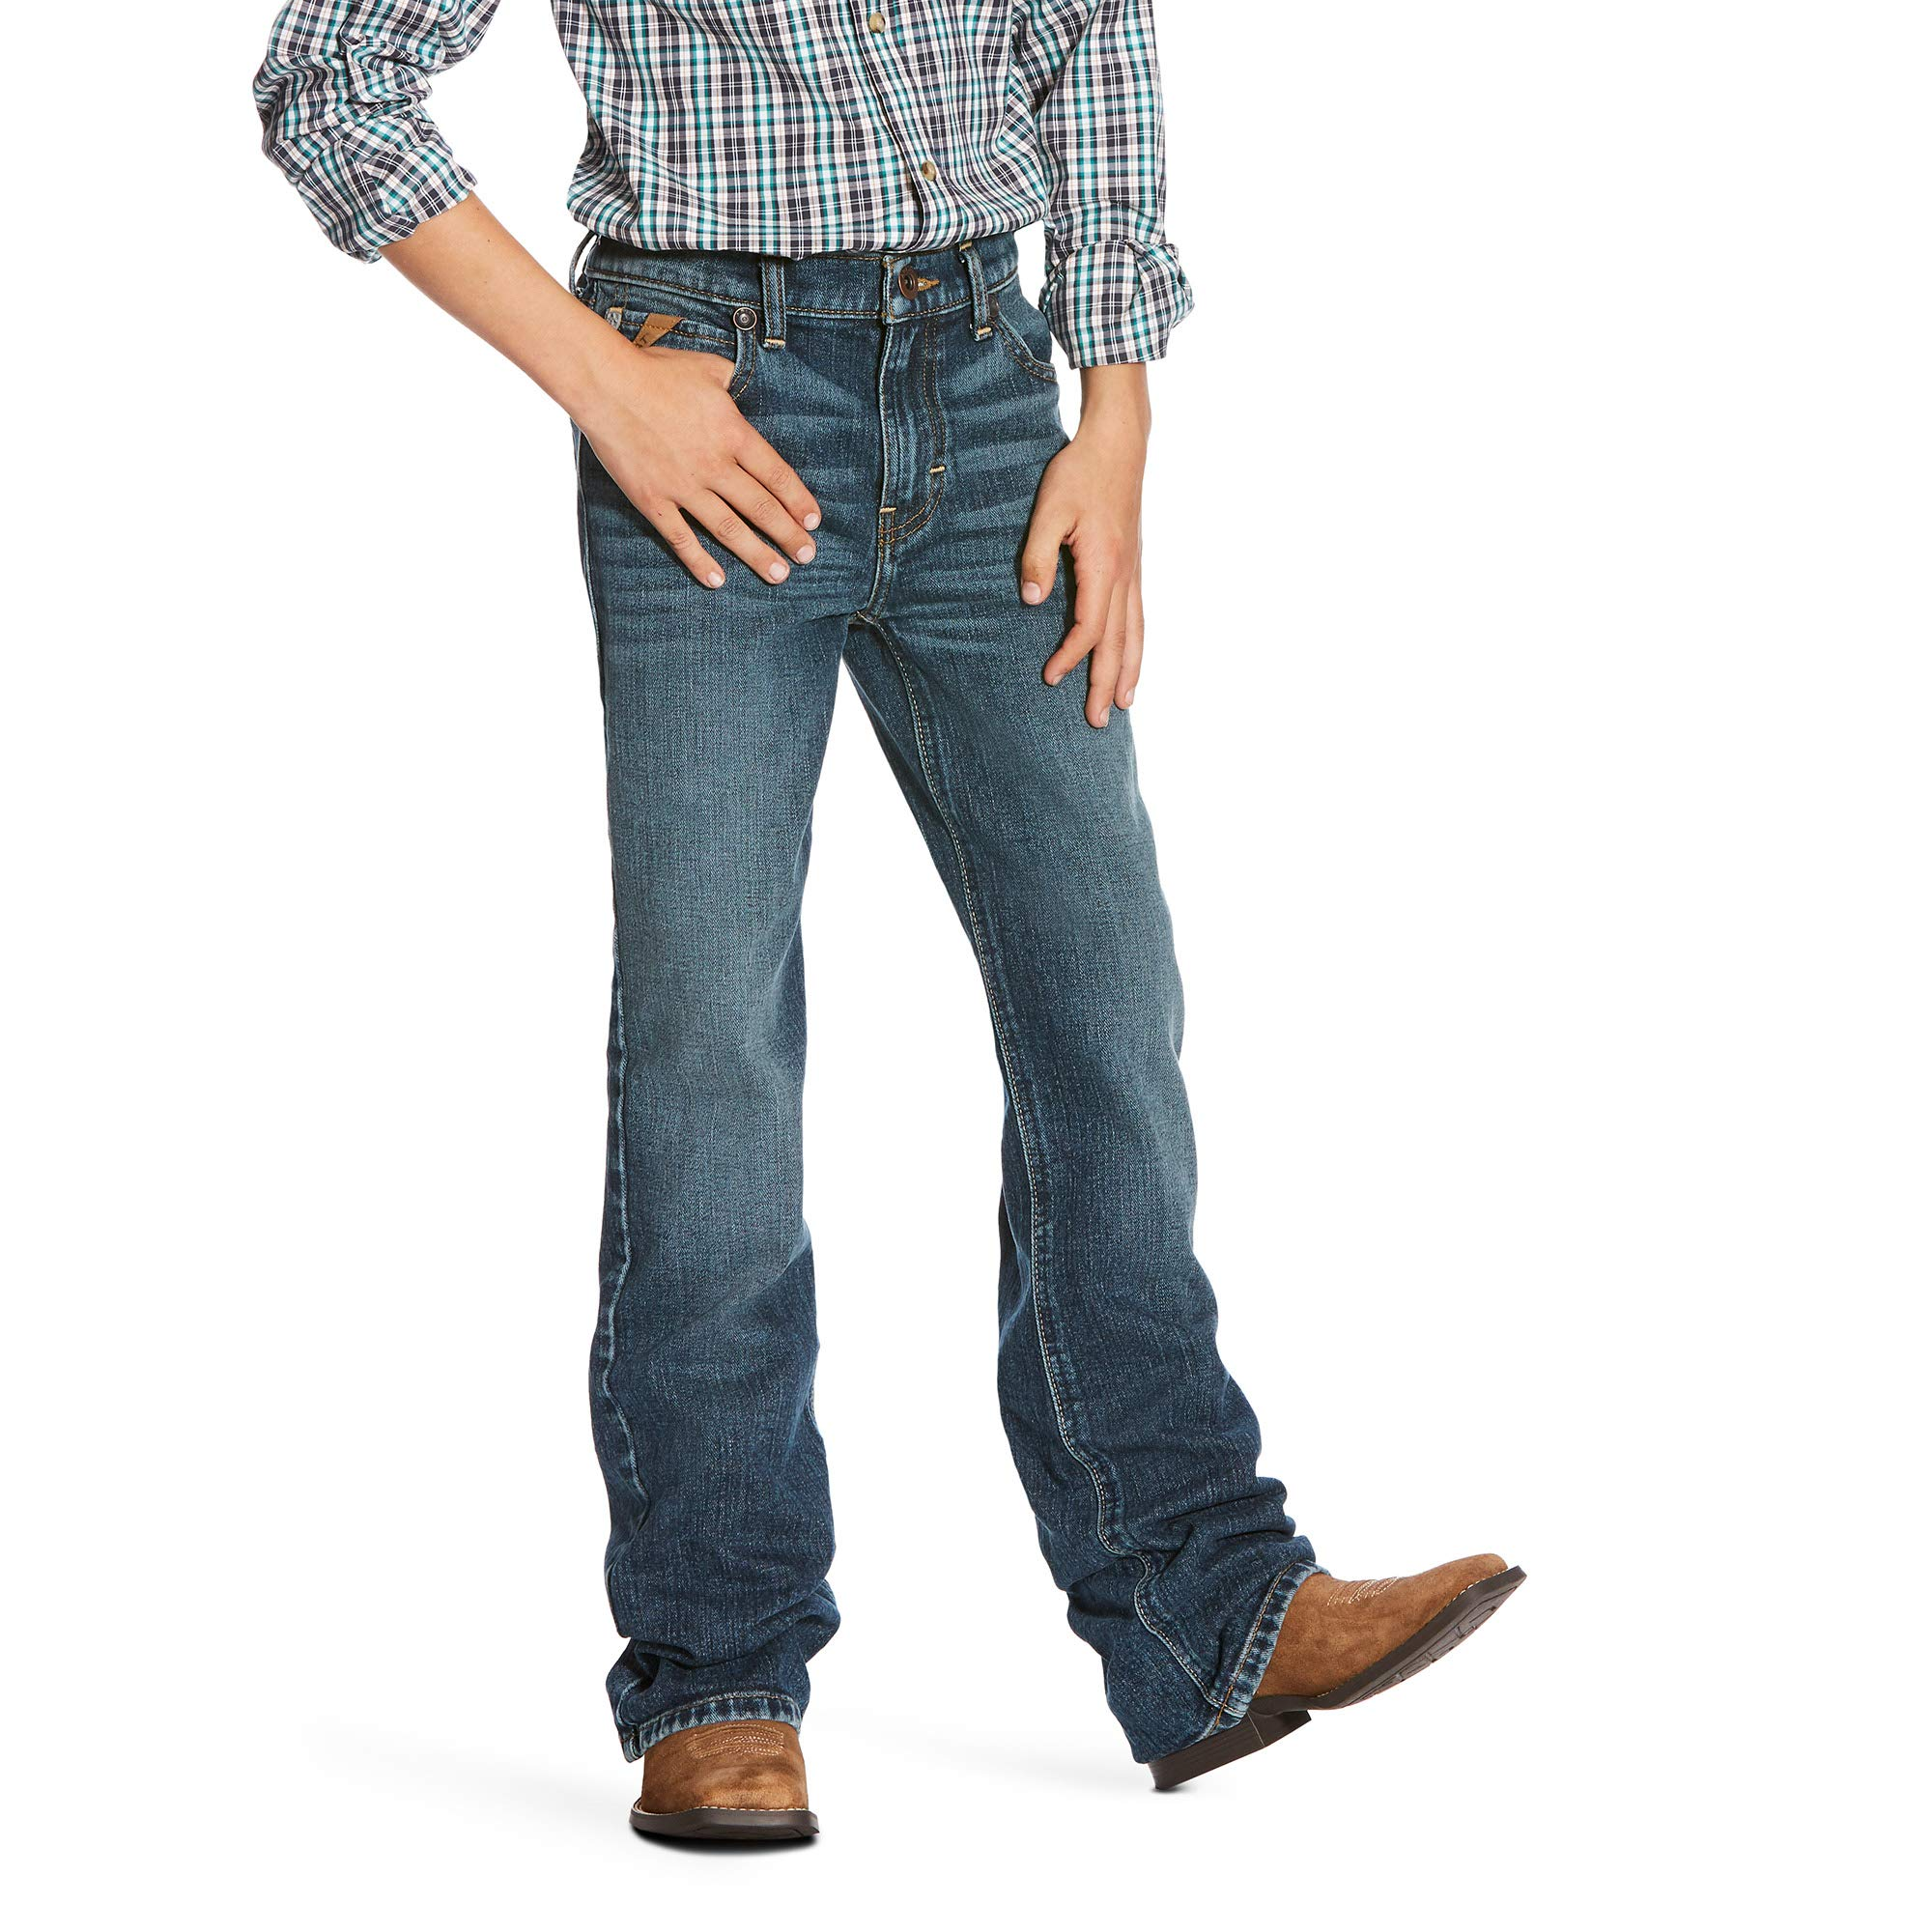 ARIAT Boys' Big B4 Relaxed Fit Bootcut Jean, Kilroy, 14 R